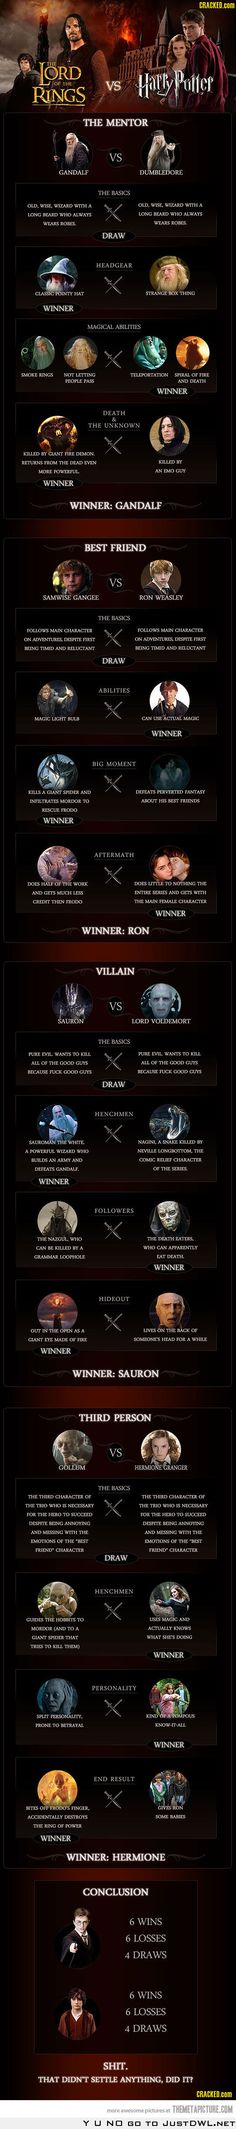 Lord of the Rings wins in my personal opinion. But it is definitely close